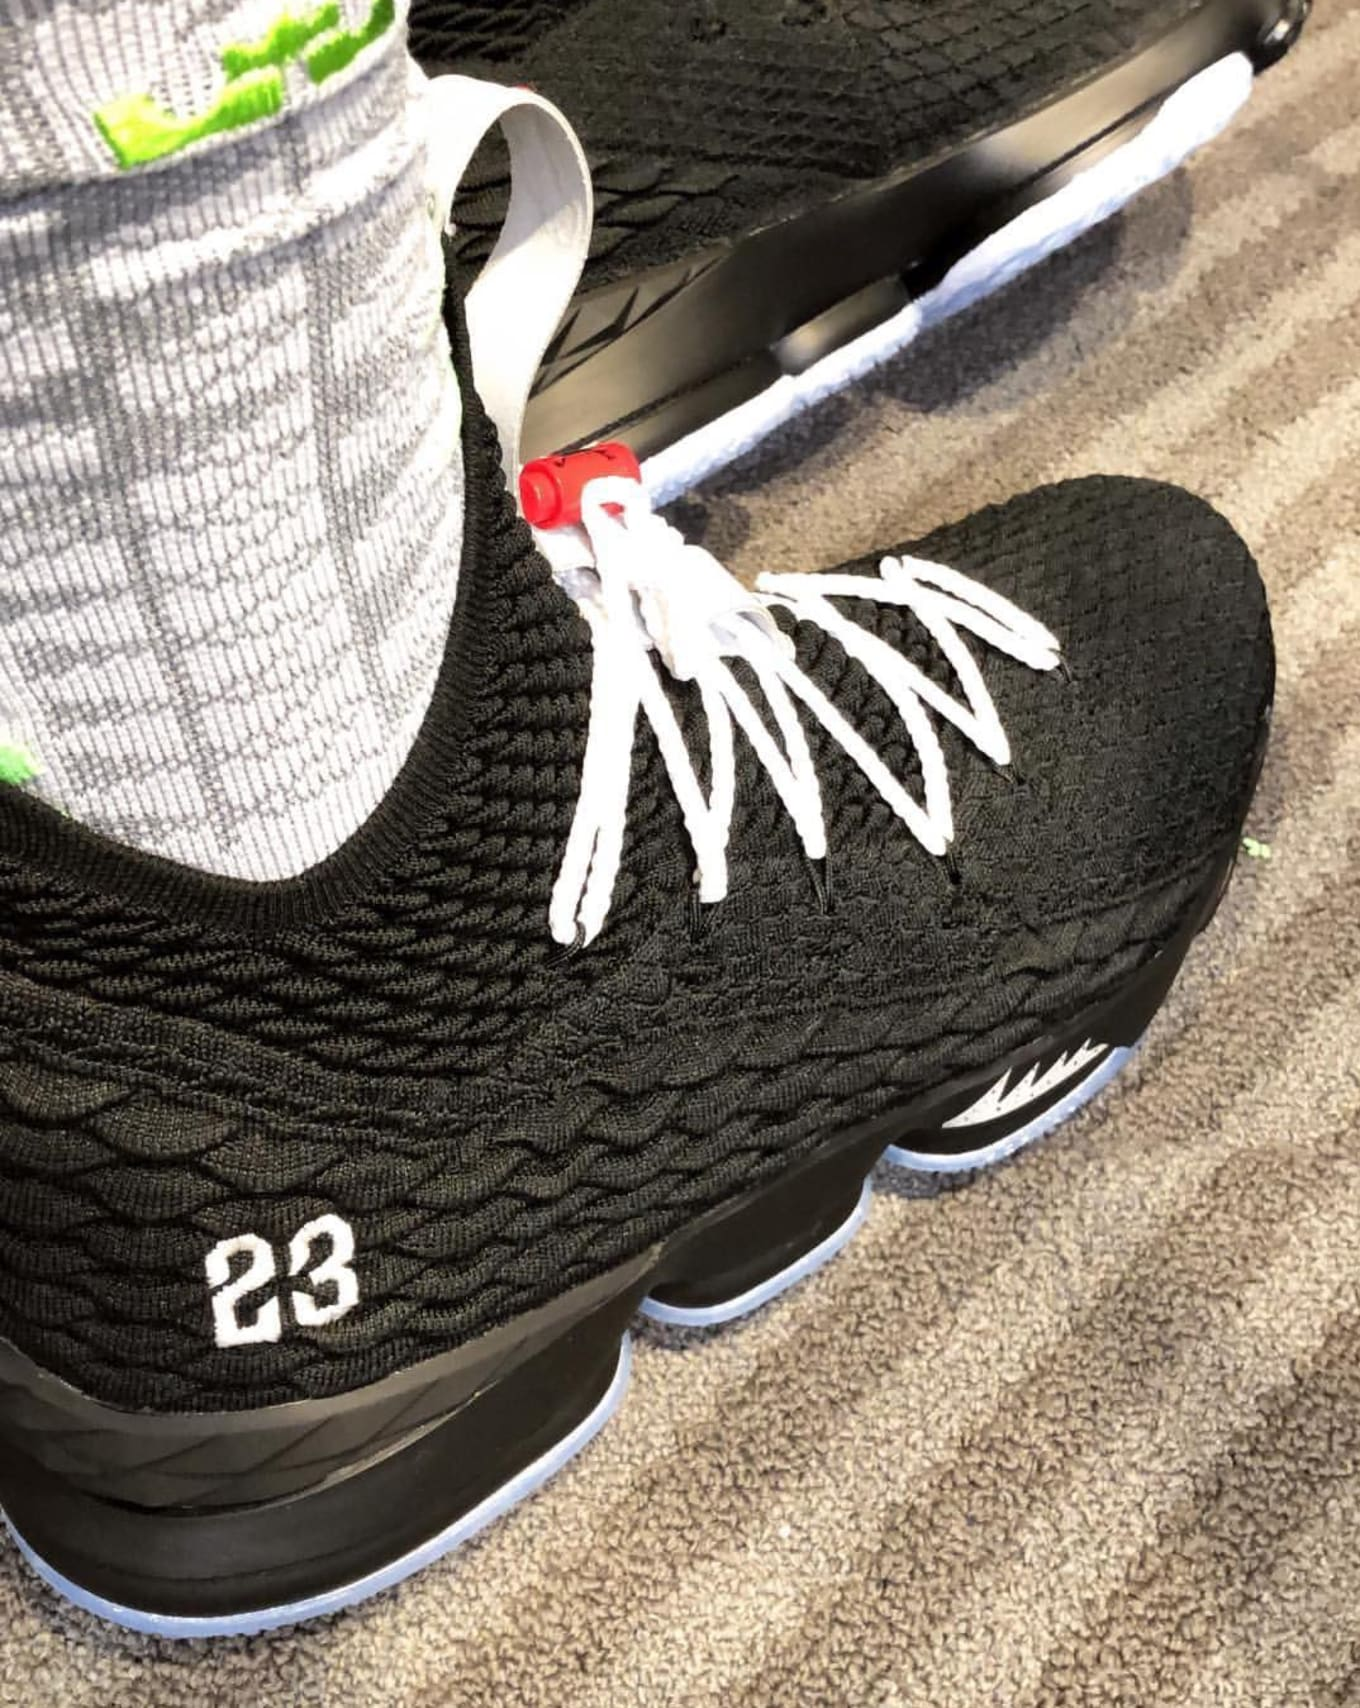 LeBron James Pays Tribute to Michael Jordan with Special Sneakers 4fc2f2816706